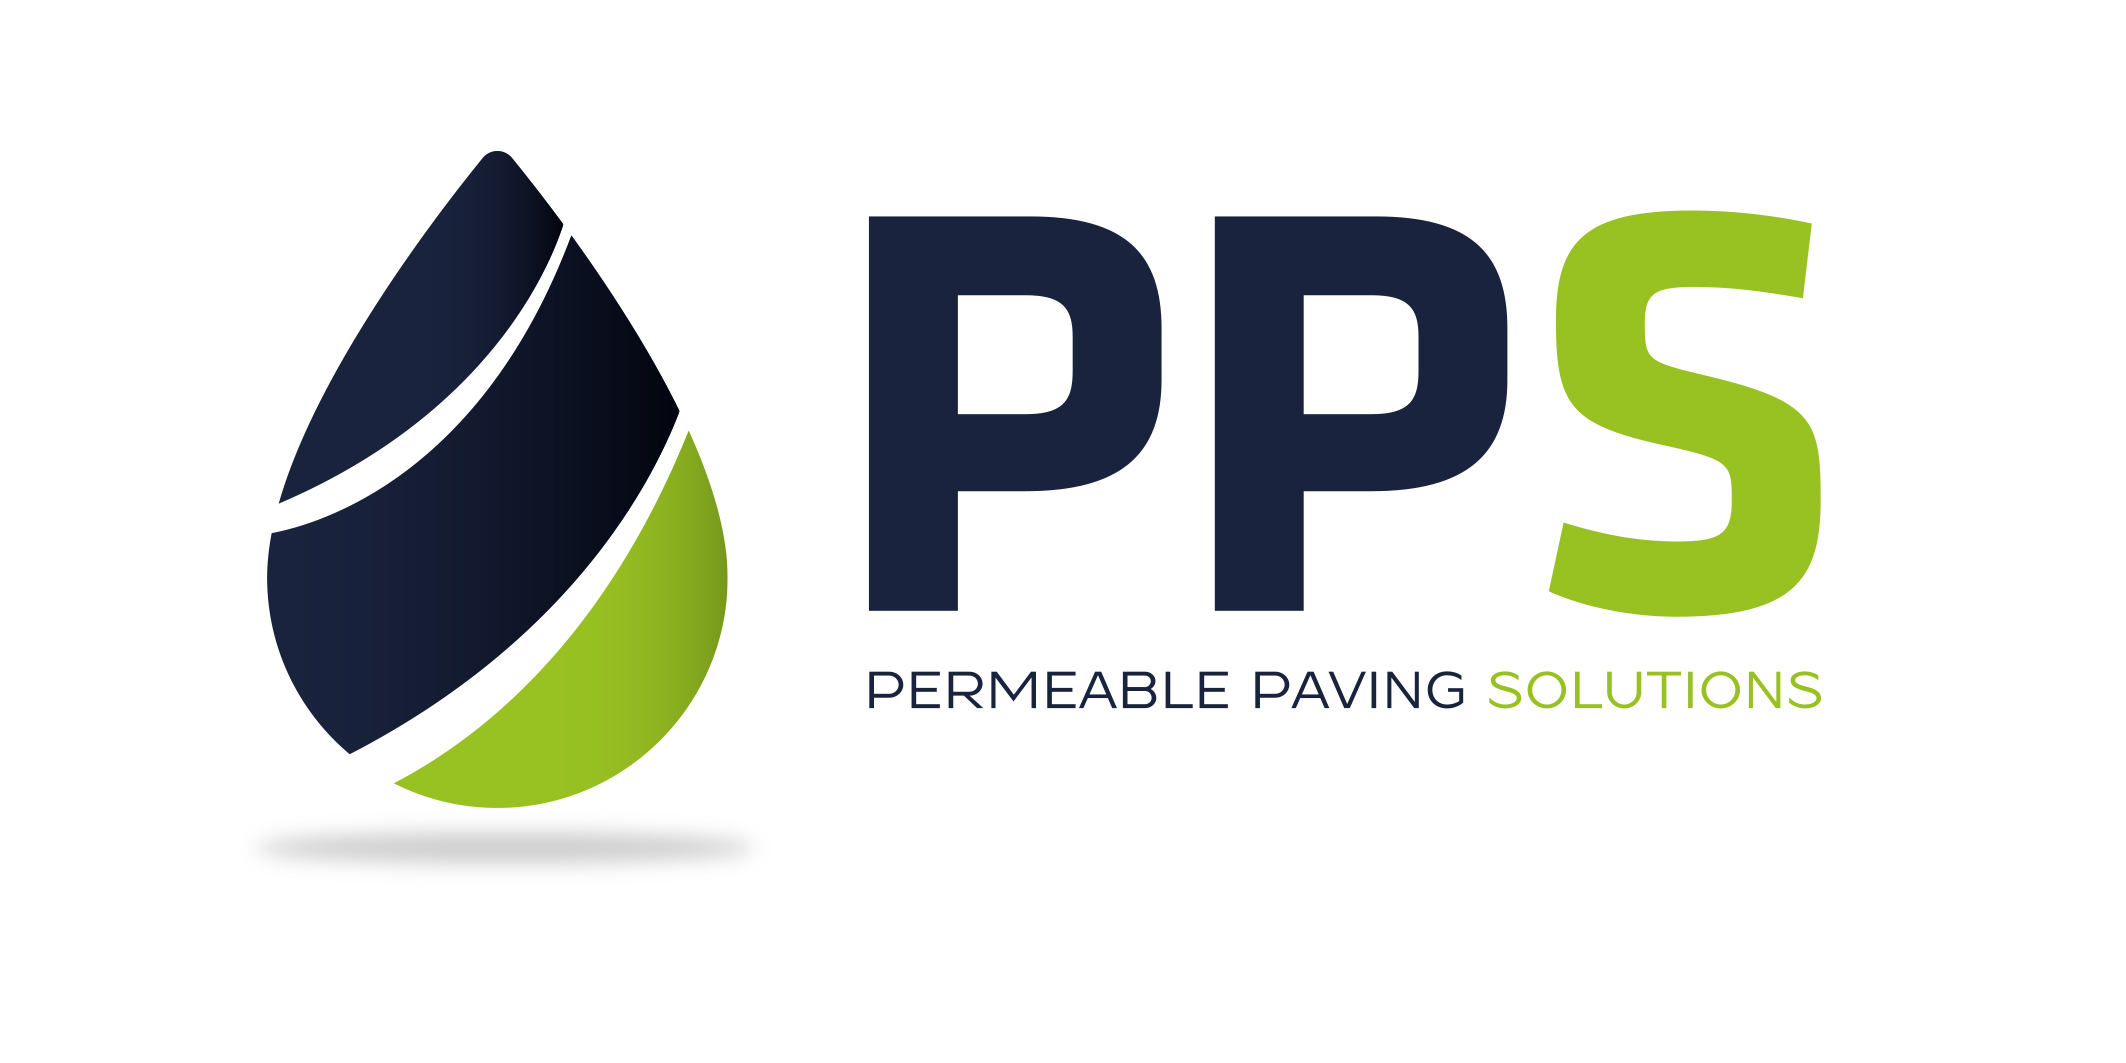 Permeable Paving Solutions